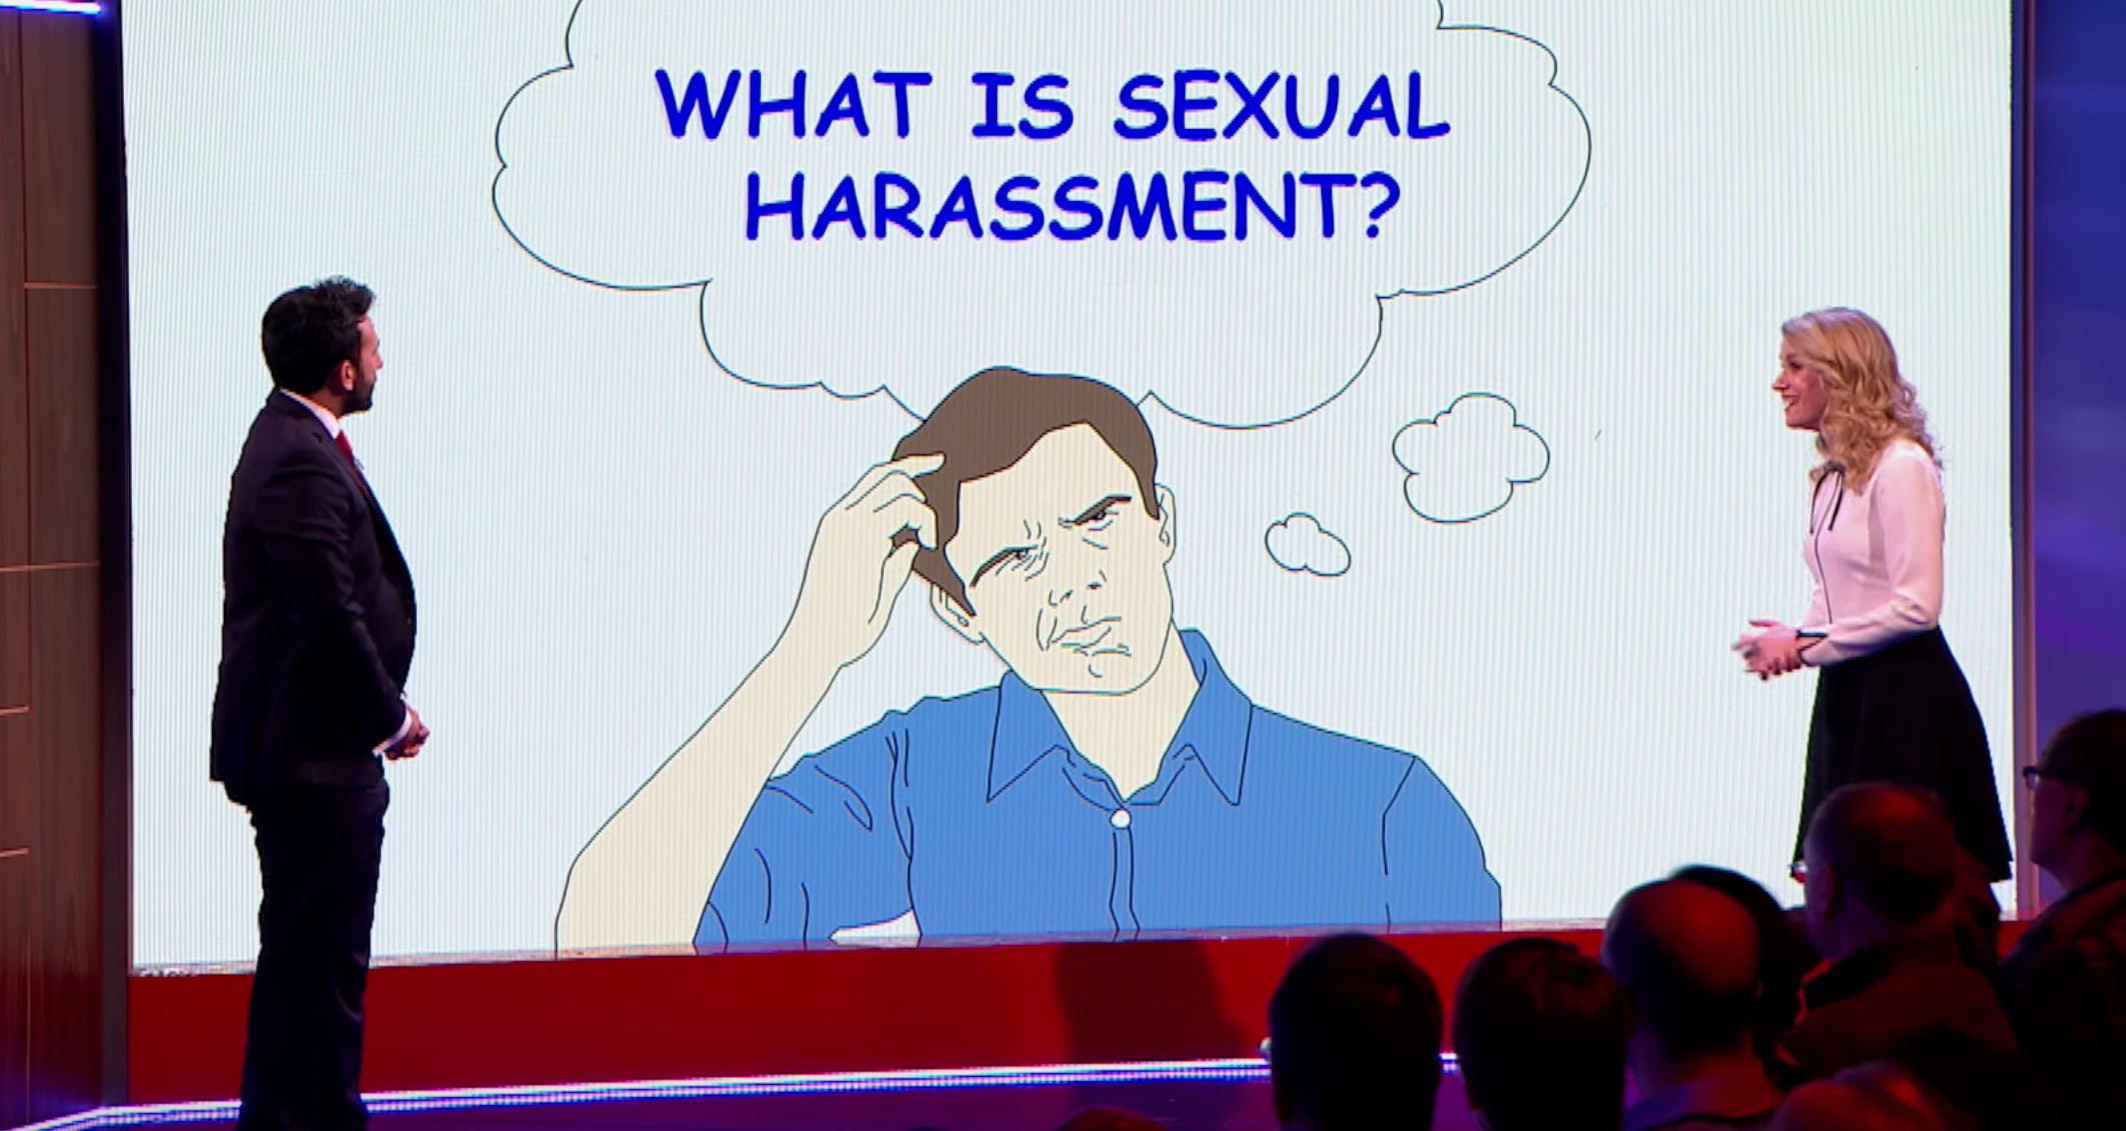 Sexual harassment form funny videos